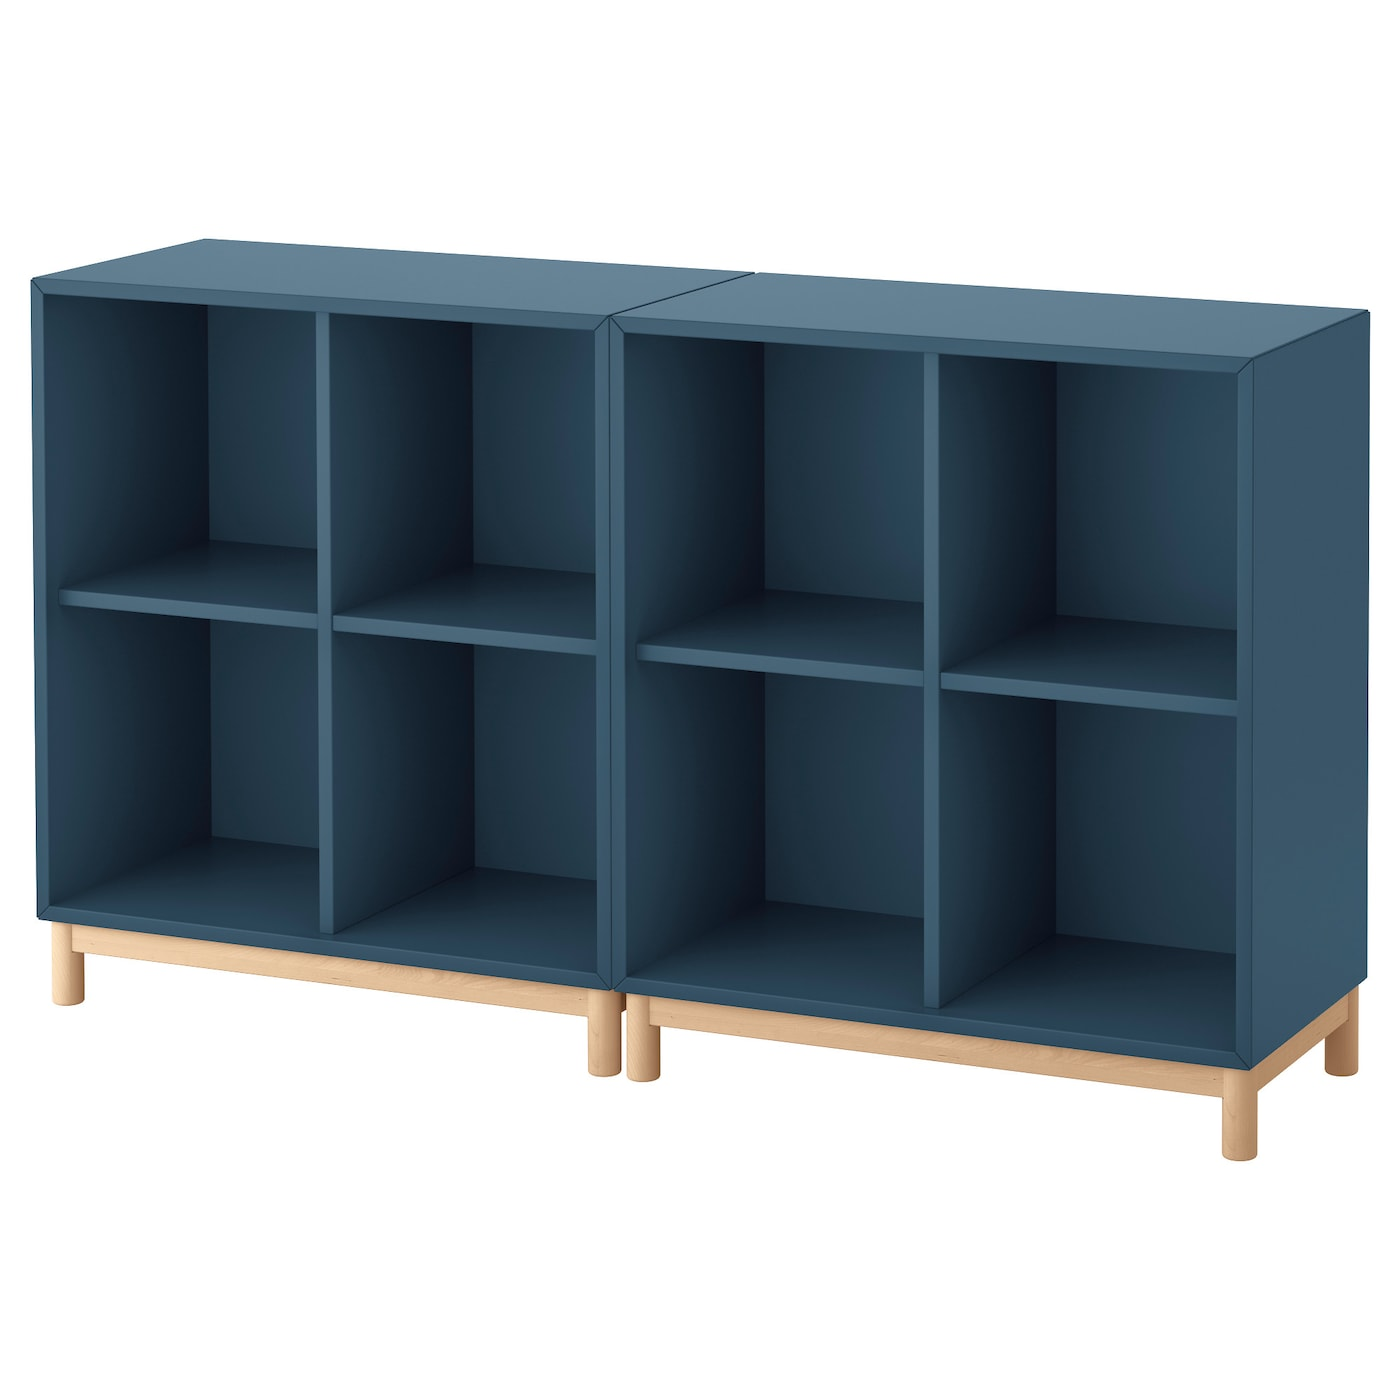 eket cabinet combination with legs dark blue 140x35x80 cm. Black Bedroom Furniture Sets. Home Design Ideas